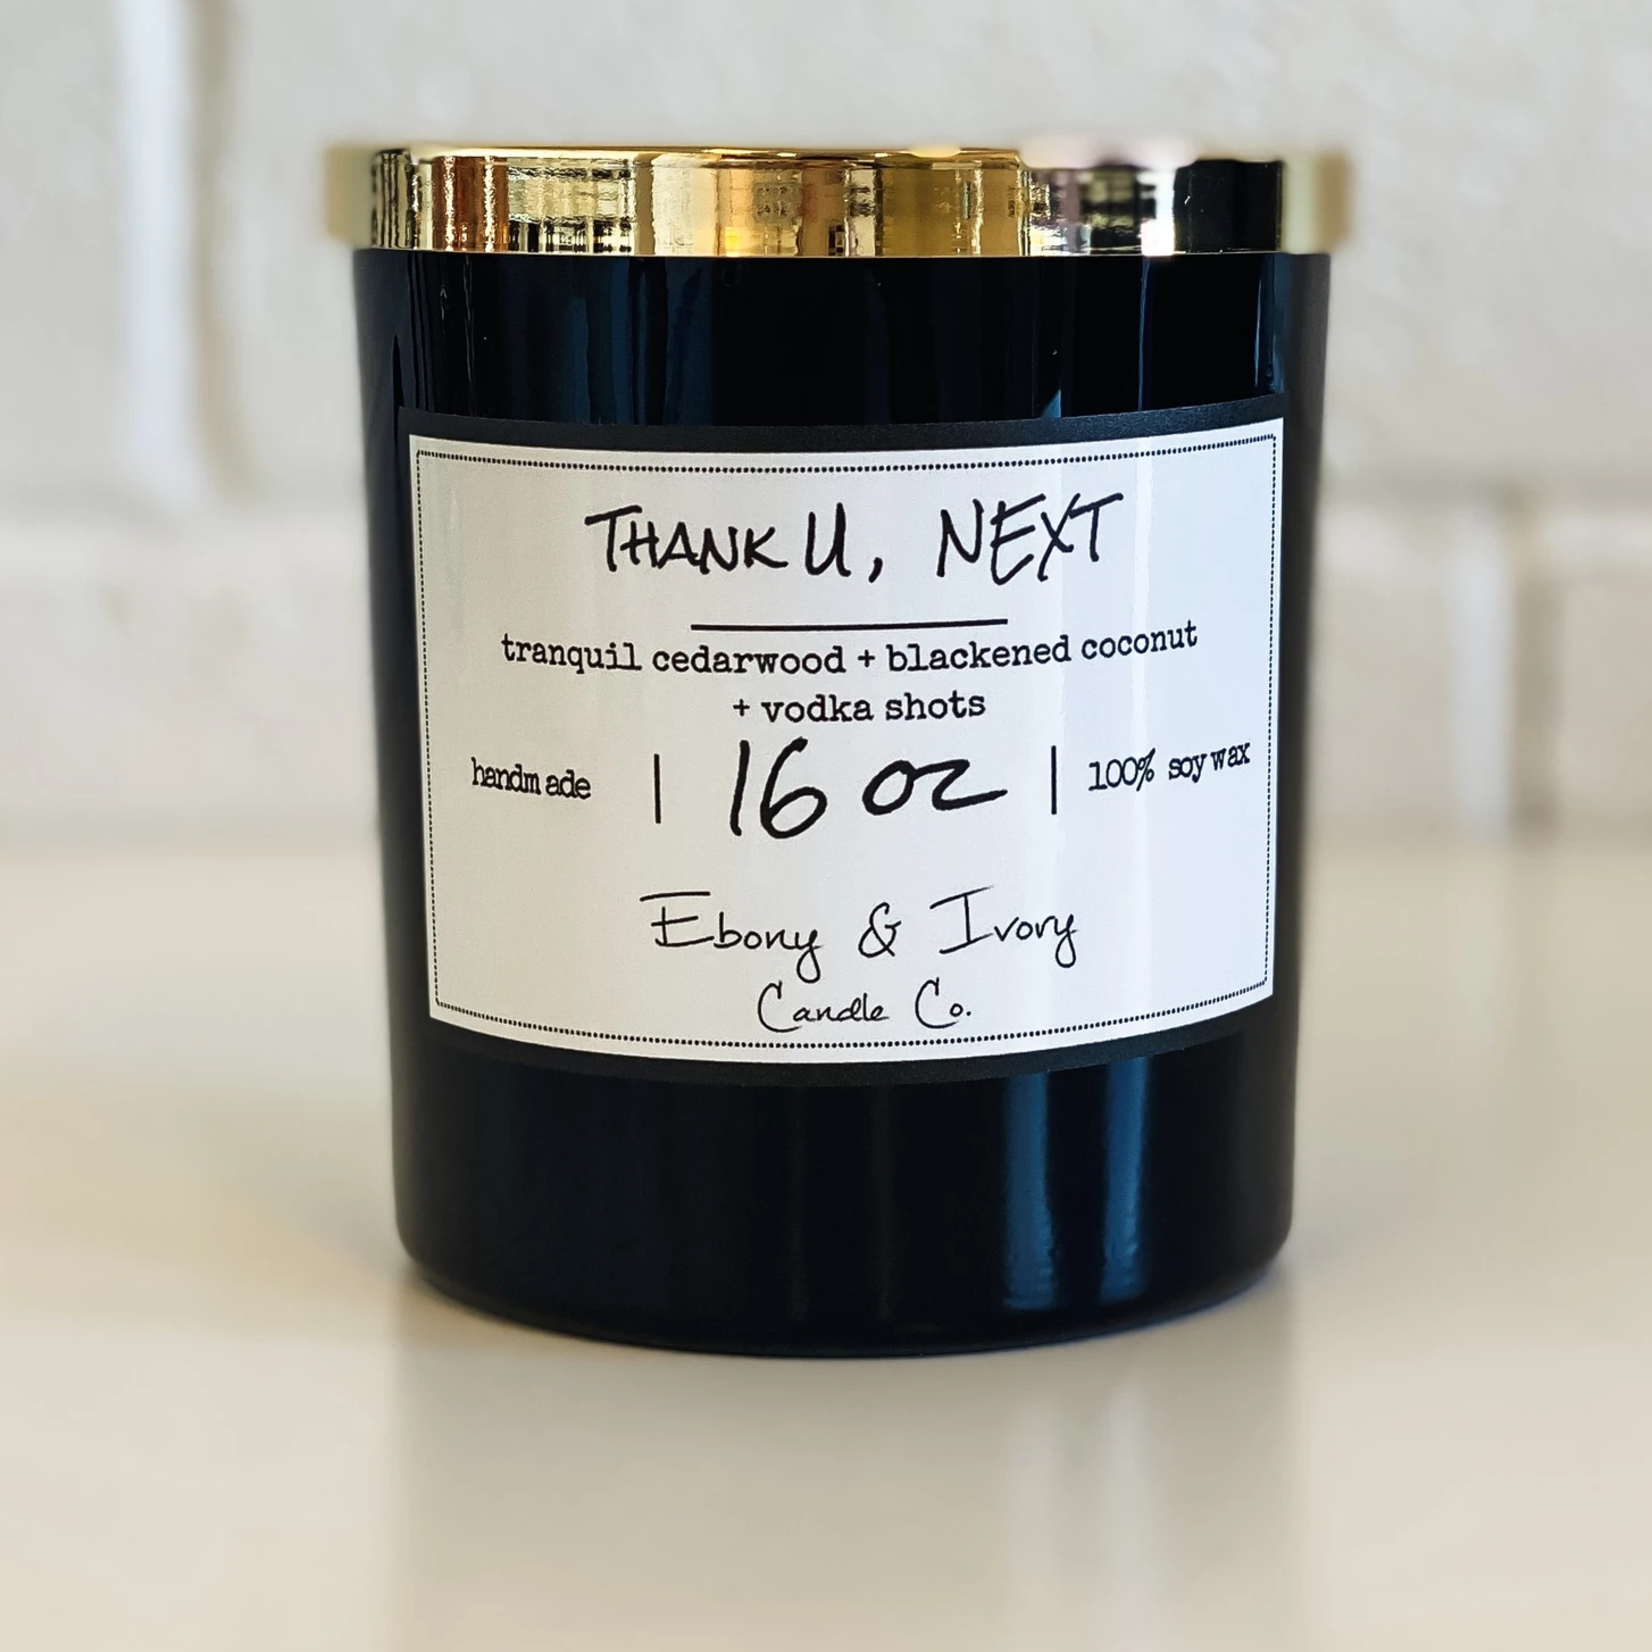 Ebony & Ivory Candle Co. Thank U, NEXT 16oz